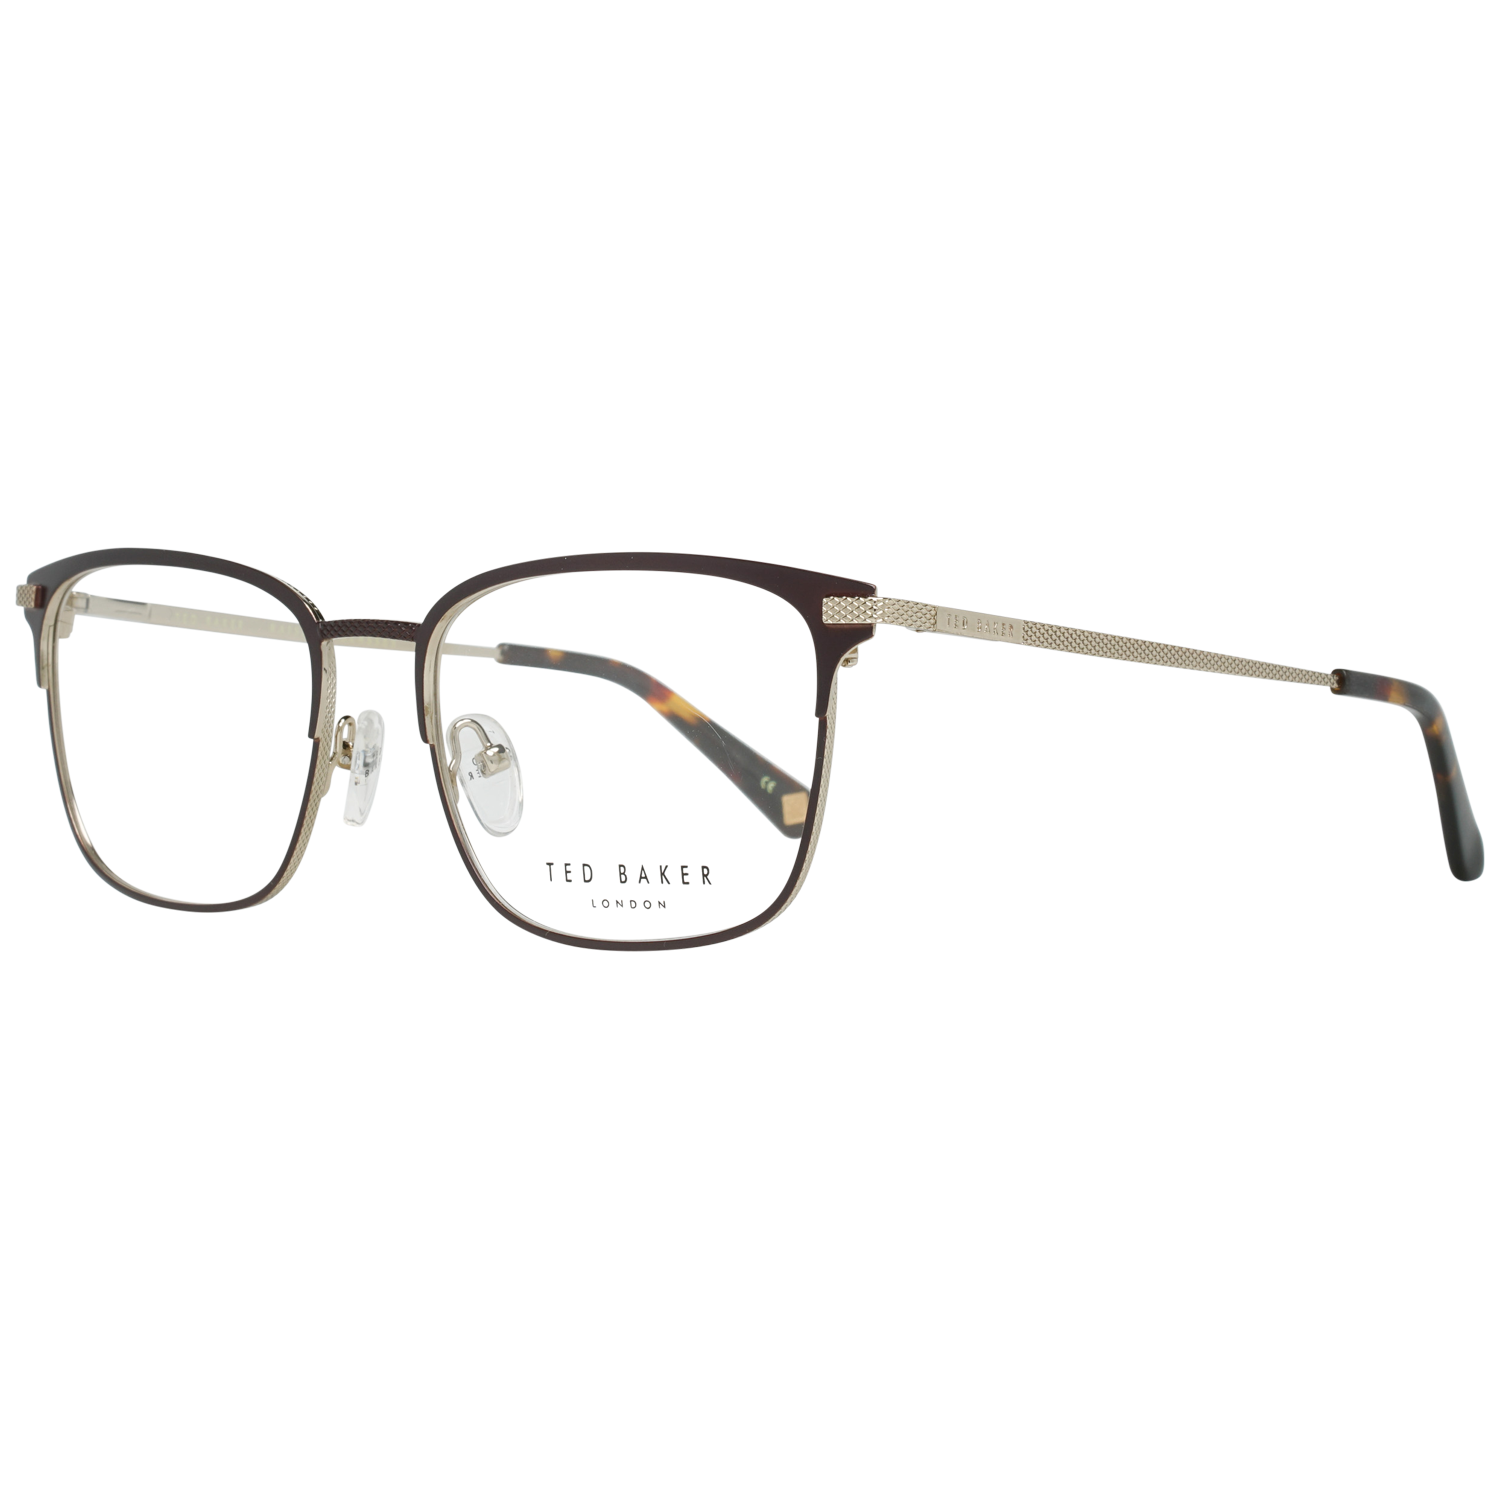 Ted Baker Optical Frame TB4259 118 54 Daley Brown